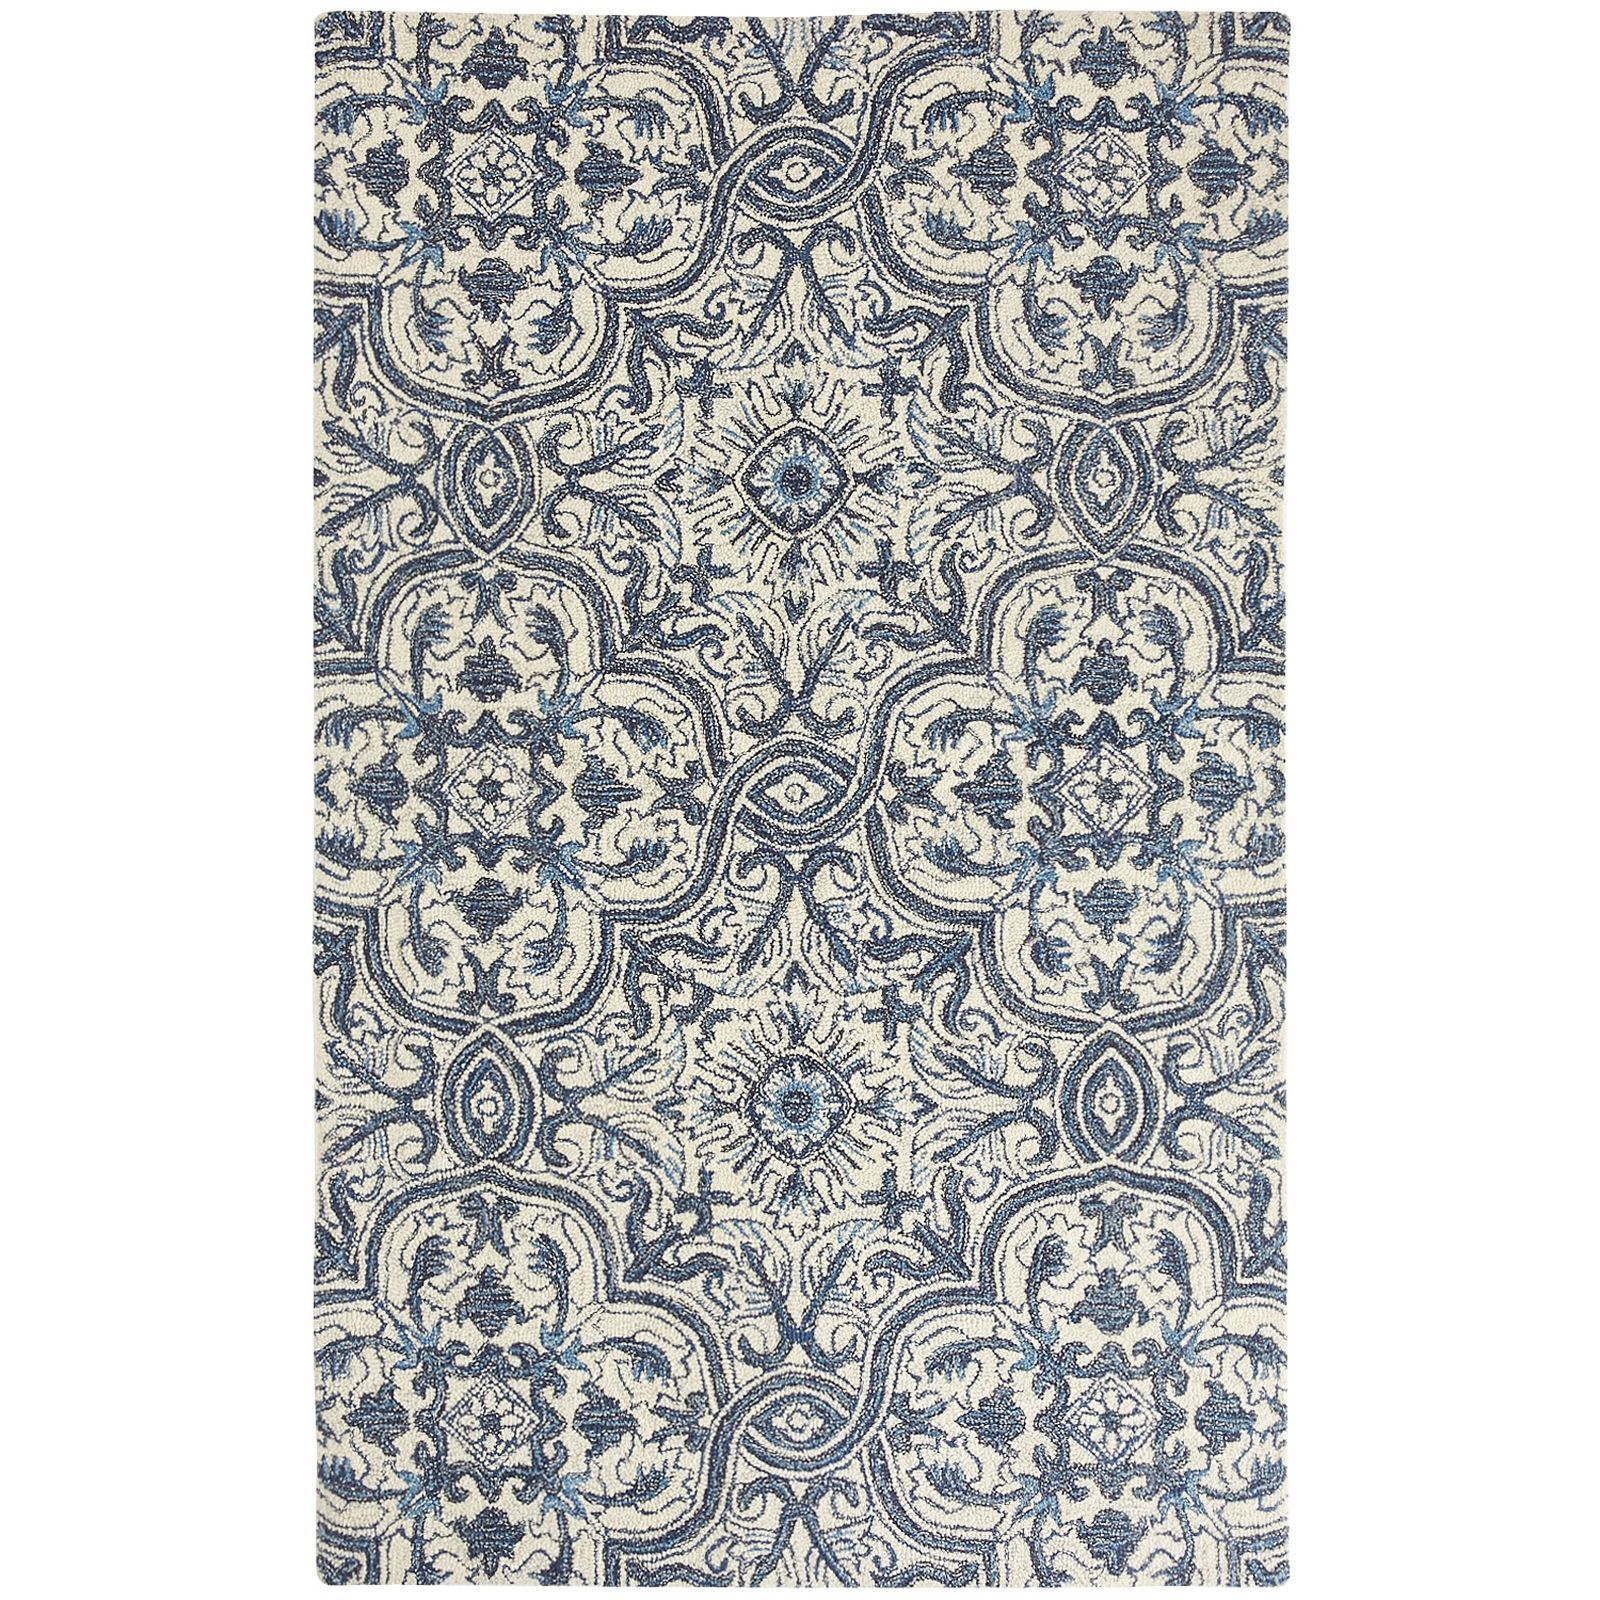 Believe It Or Not Our Kelby Rug Is Inspired By Gothic Architecture Yes Its Intricate Quatrefoil Motifs Offer Not Just A Rich Histor Rugs Cool Rugs 8x10 Rugs